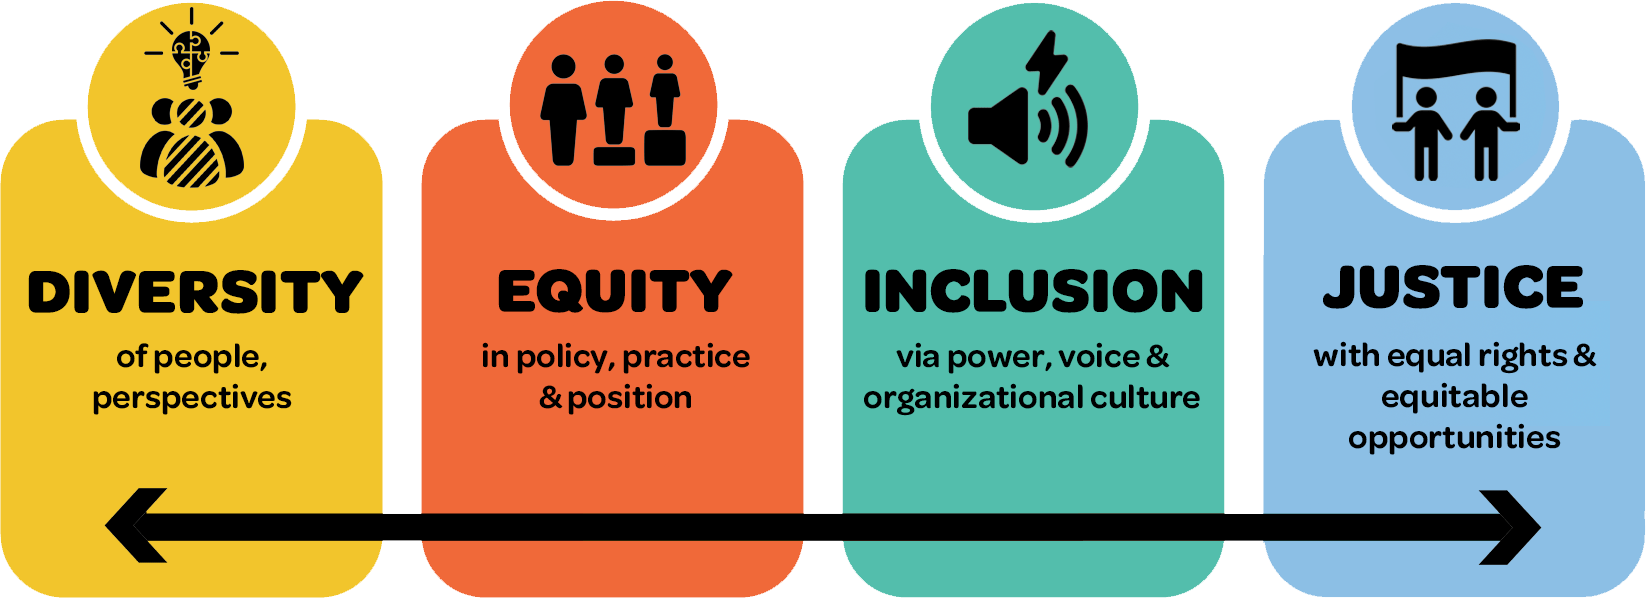 Diversity, Equity, Inclusion & Justice graphic